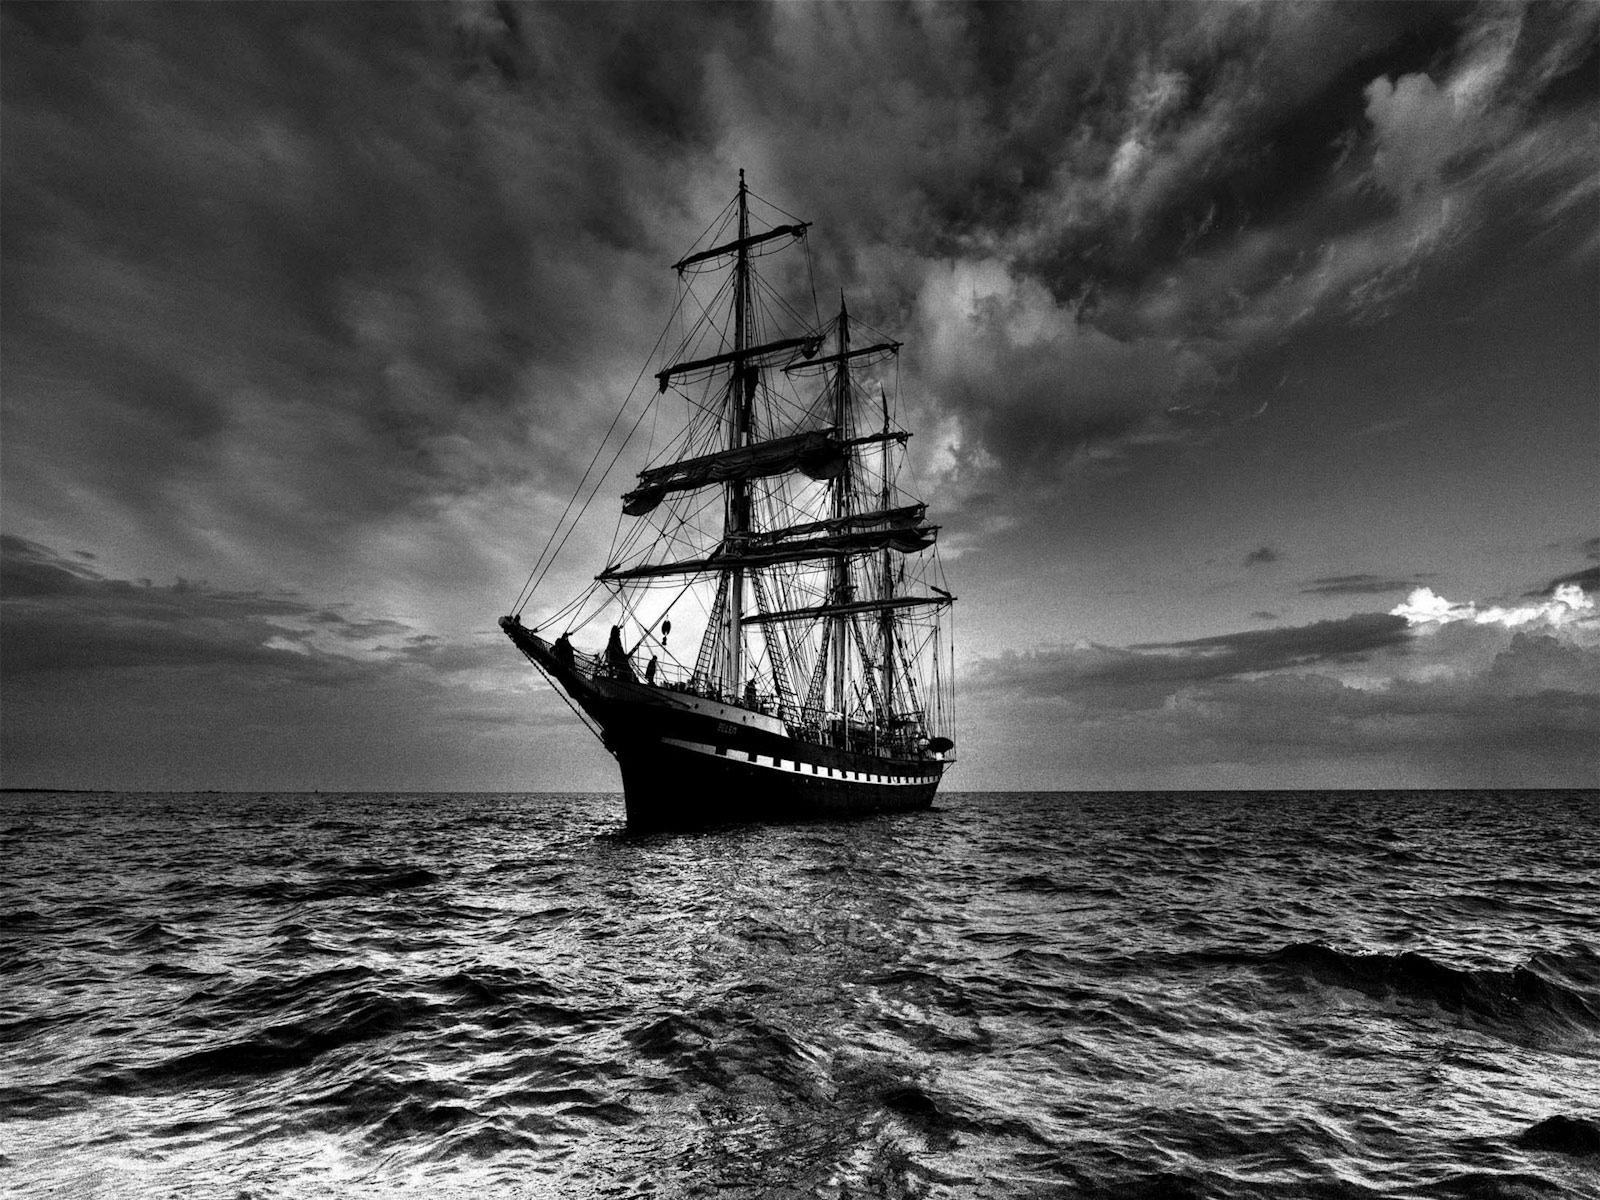 sailing_ship_in_pacific_ocean